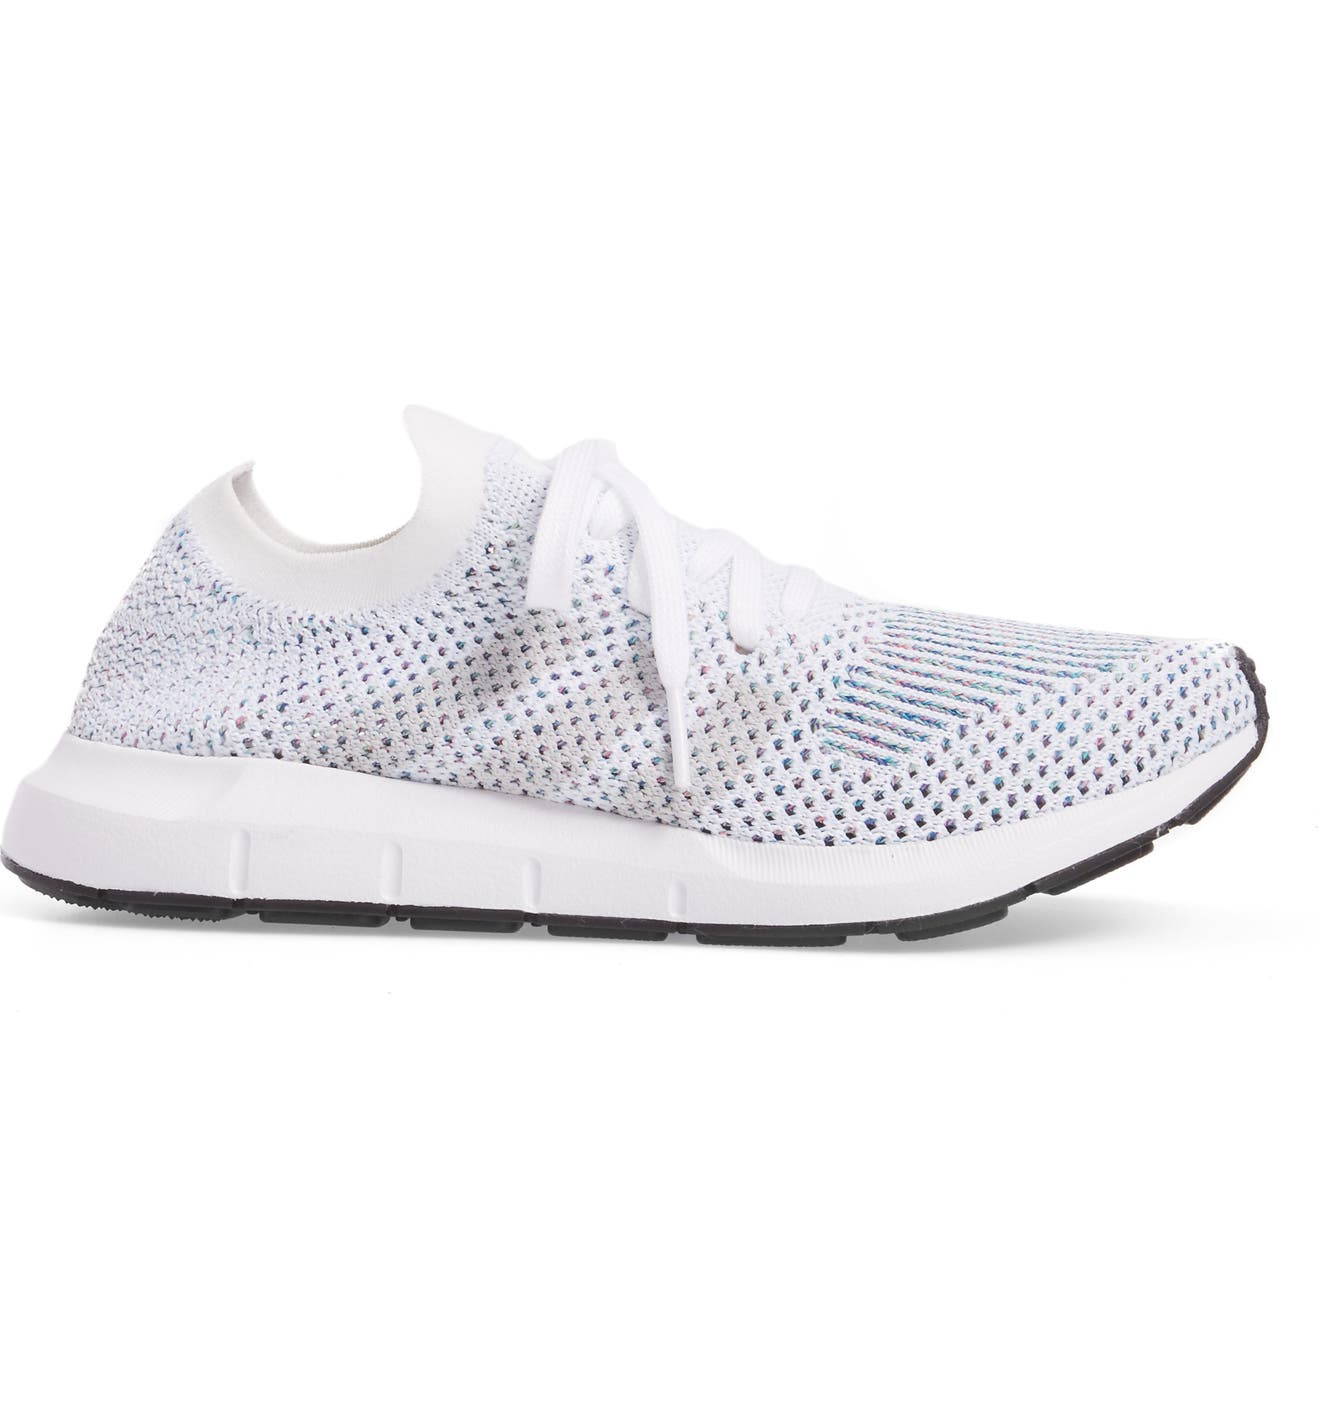 adidas Swift Run Primeknit Training Shoe (Women)  52b15d121